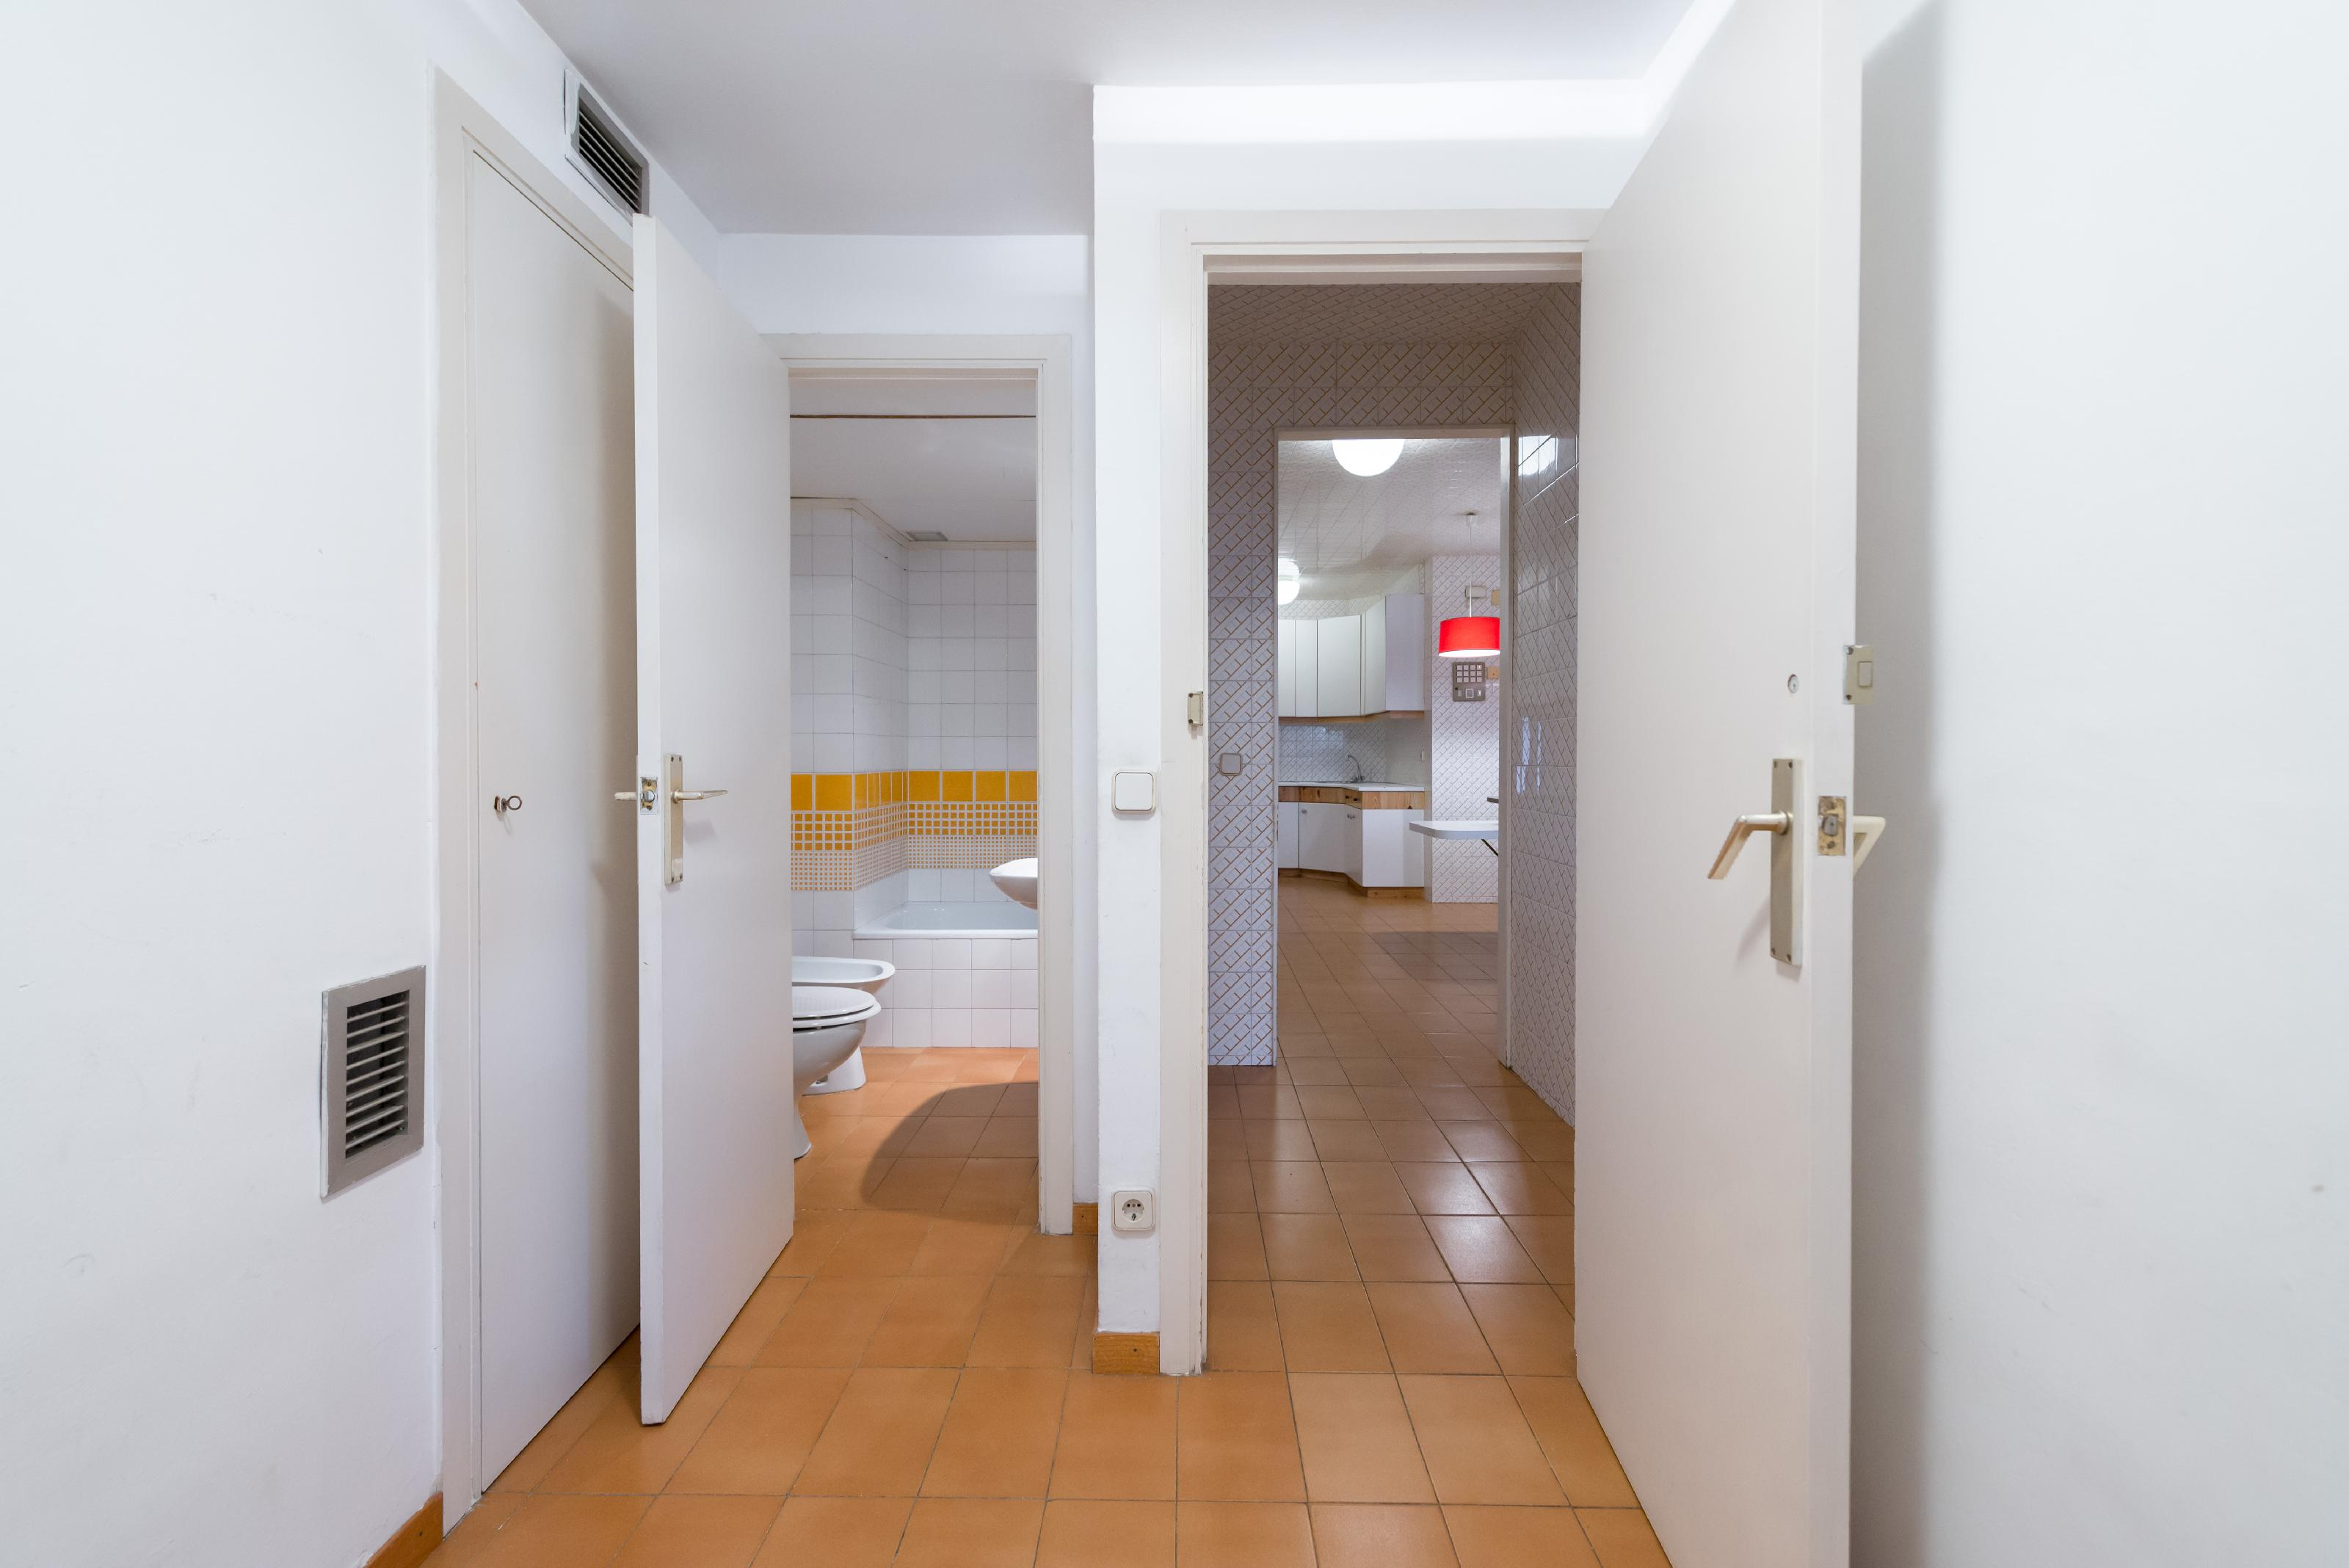 245495 Penthouse for sale in Les Corts, Pedralbes 13